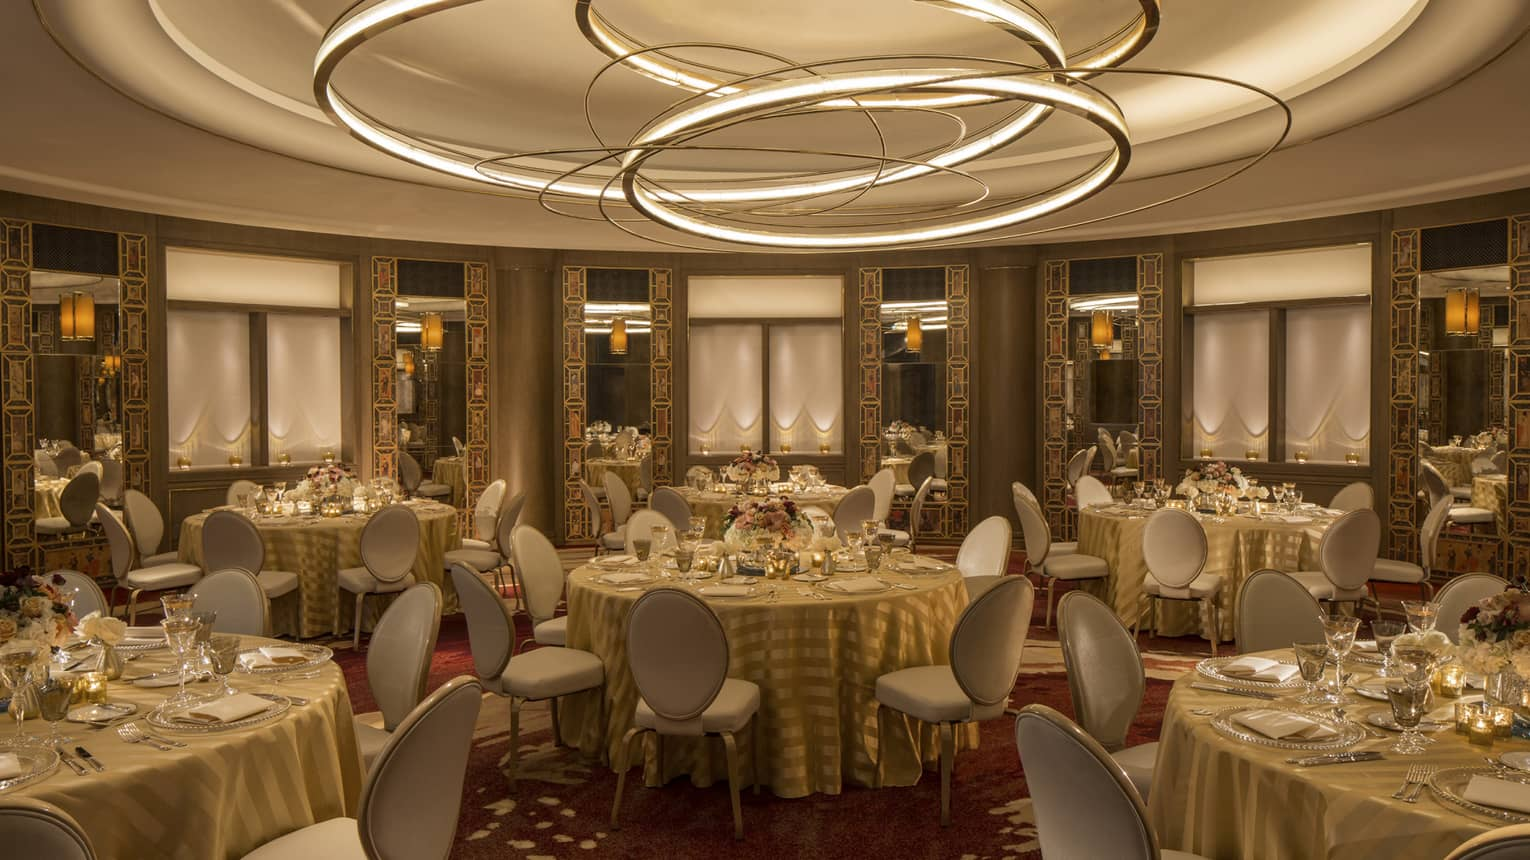 Merchants Hall banquet tables in round event room with recessed ceiling with modern gold disc sculptures